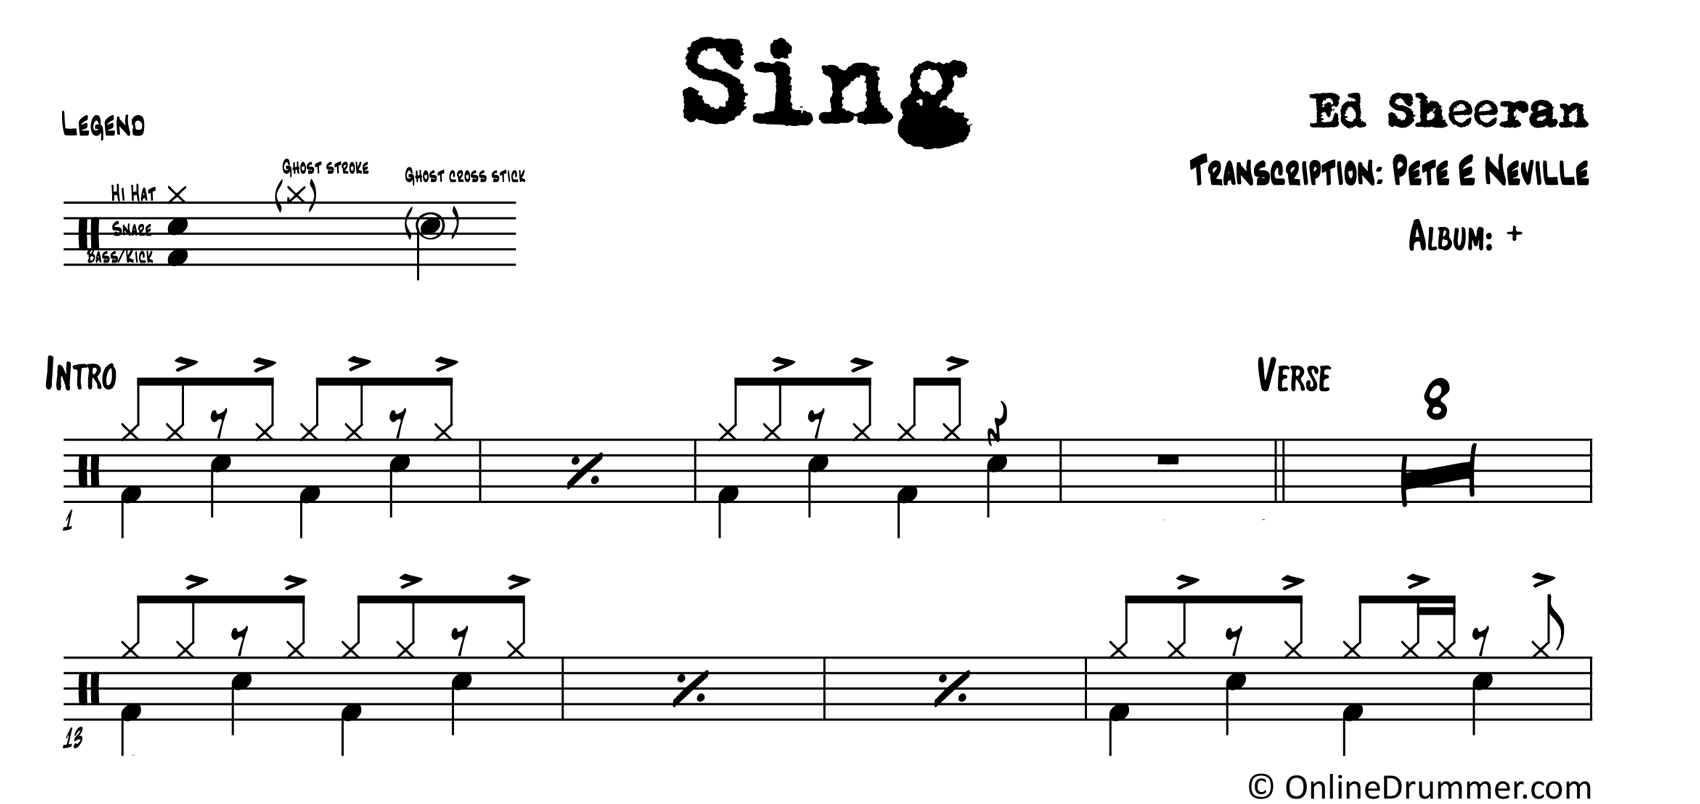 Sing - Ed Sheeran - Drum Sheet Music